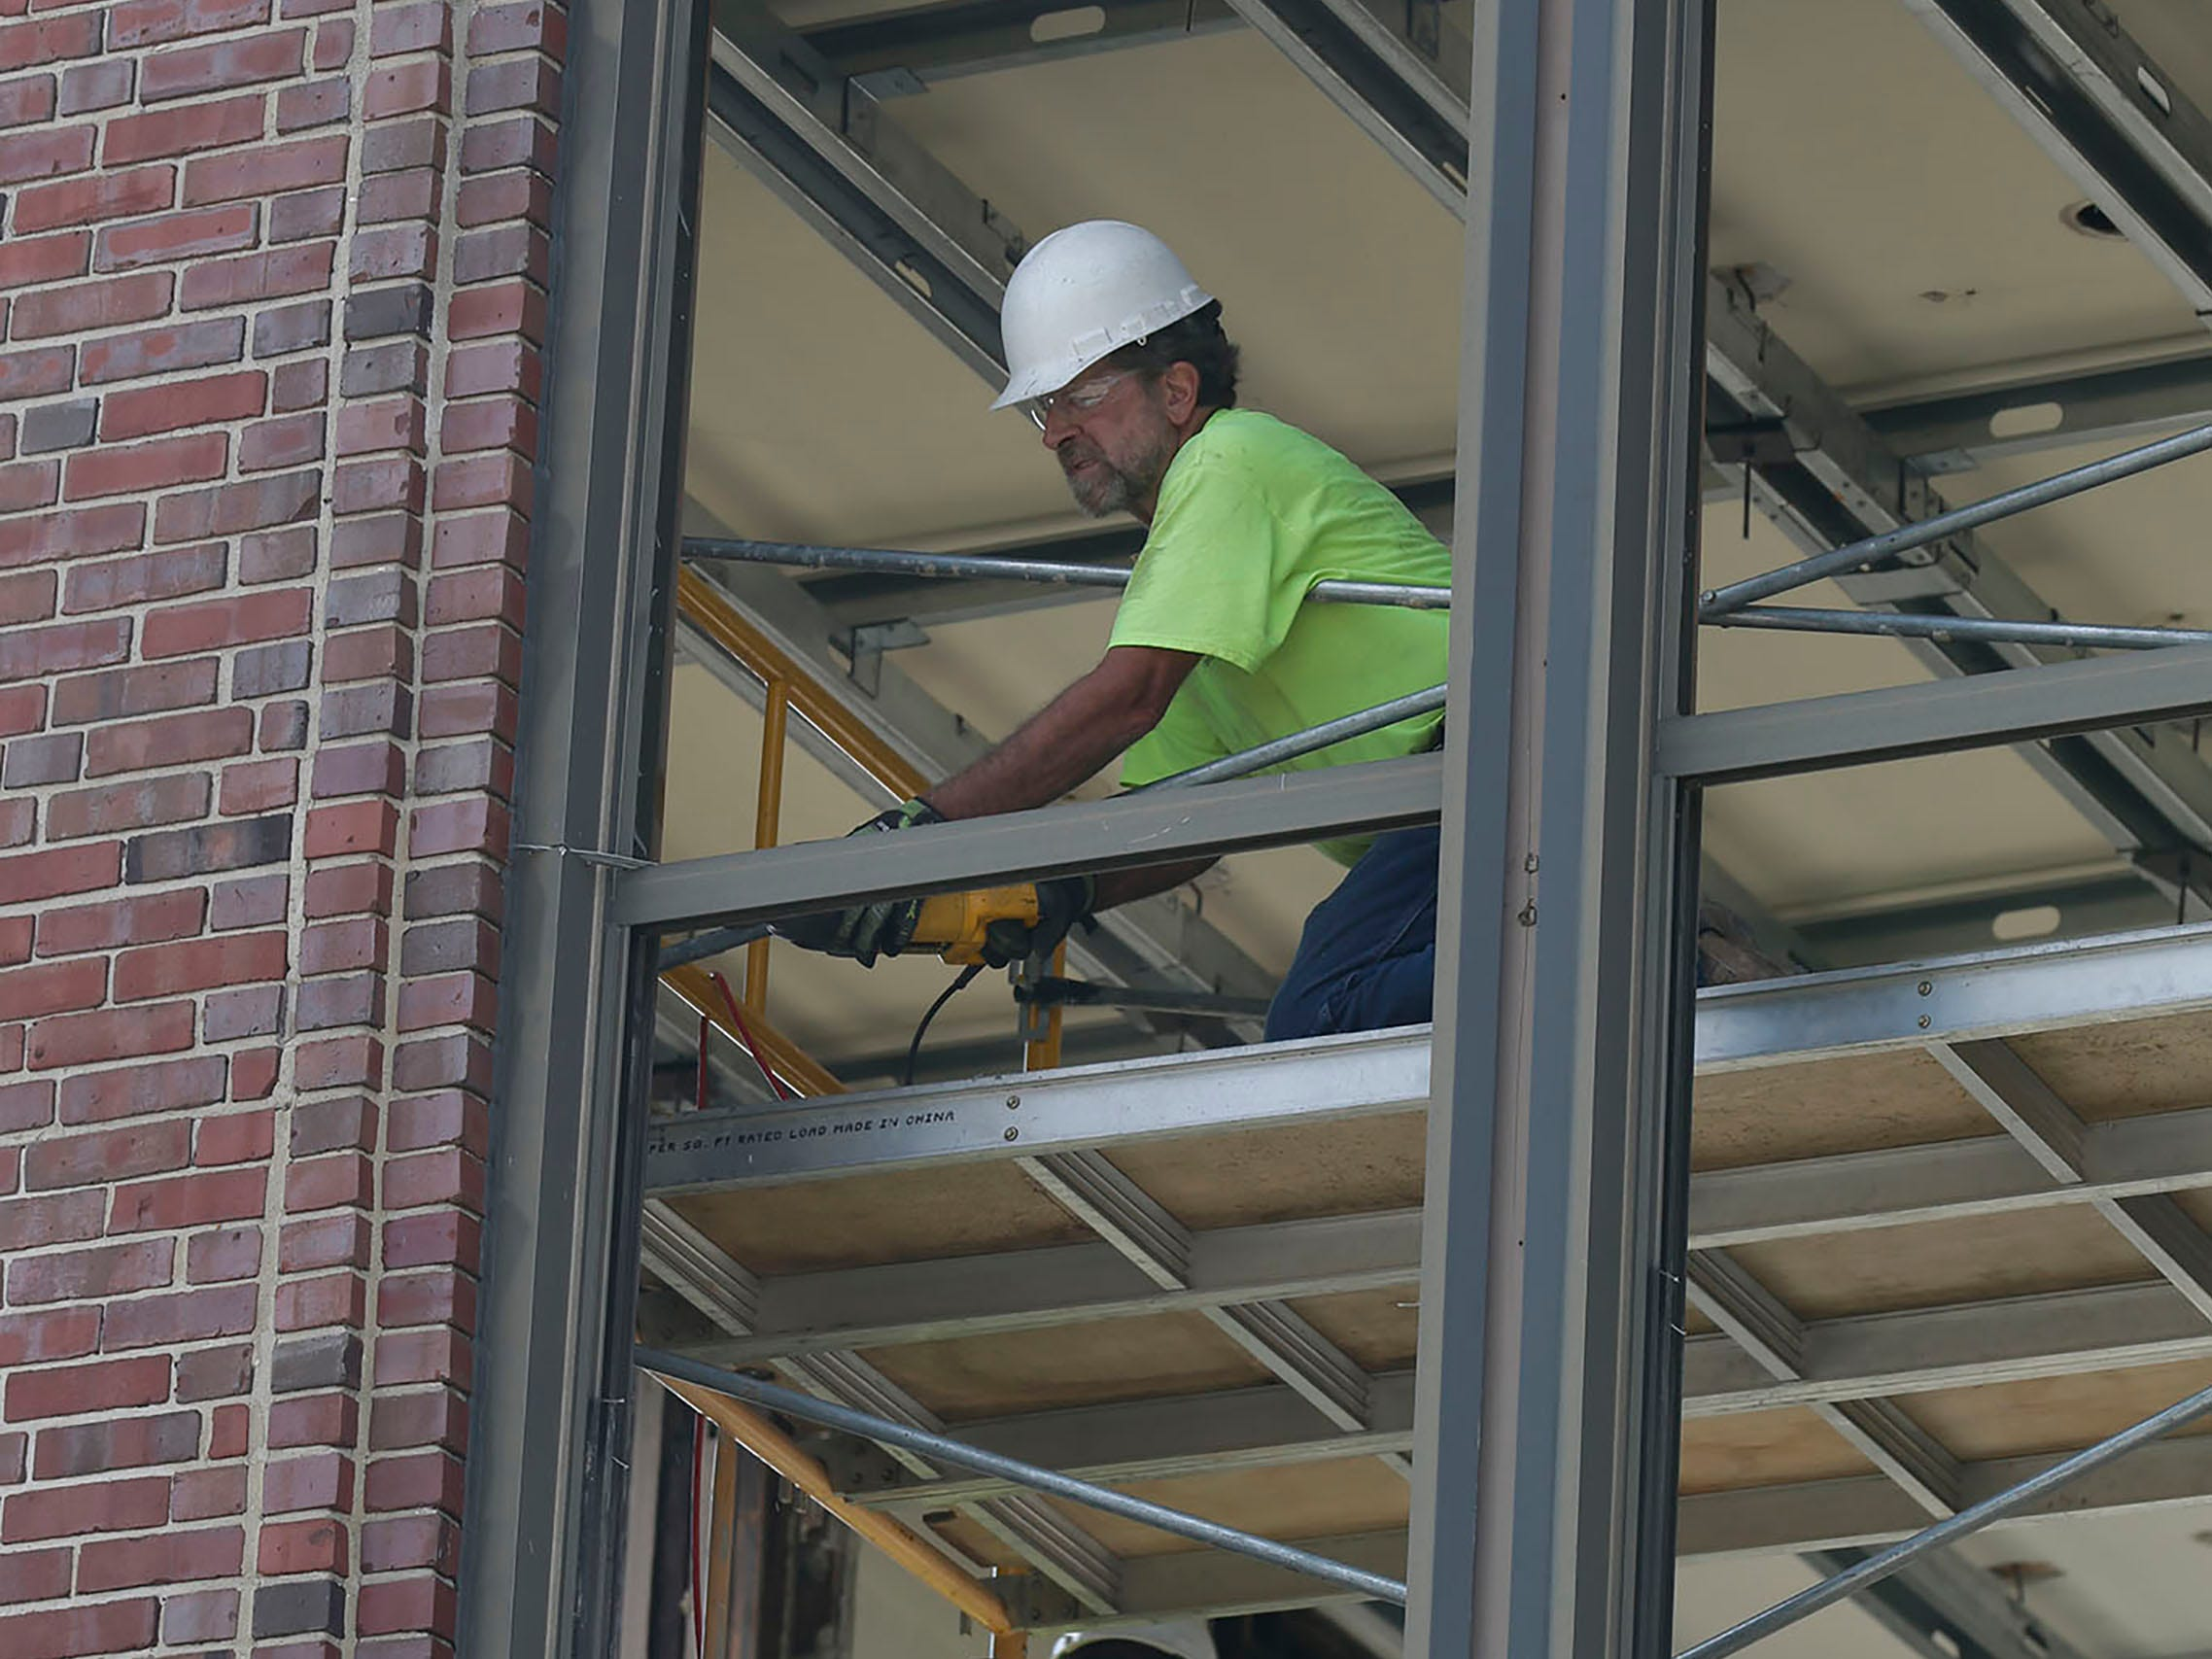 A Quasius employee cuts out an old window frame at Sheboygan City Hall, Tuesday, October 9, 2018, in Sheboygan, Wis. The city is doing a multi-million dollar renovation of the structure.